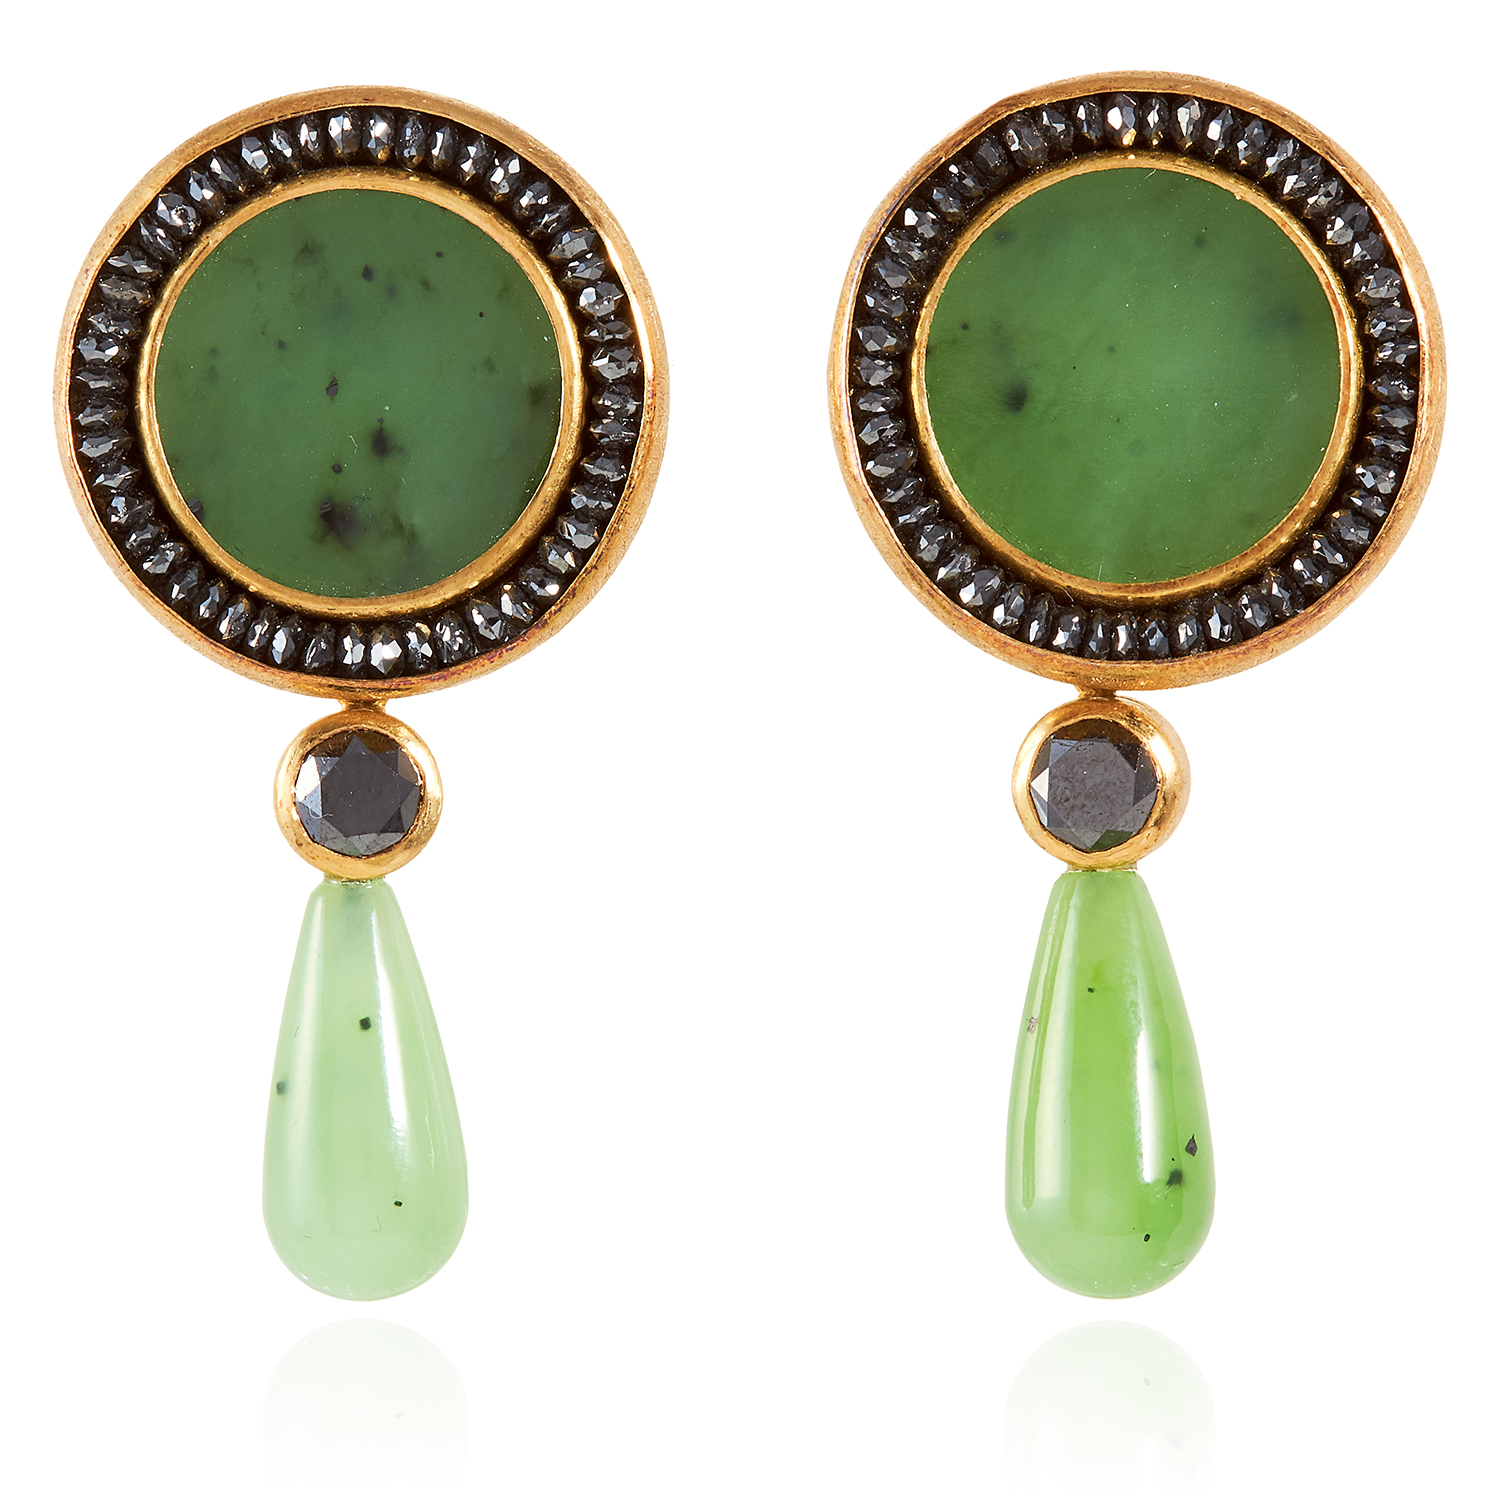 A PAIR OF NEPHRITE JADE AND BLACK DIAMOND DAY AND NIGHT EARRINGS, ZOBEL 2011 in 18ct yellow gold,